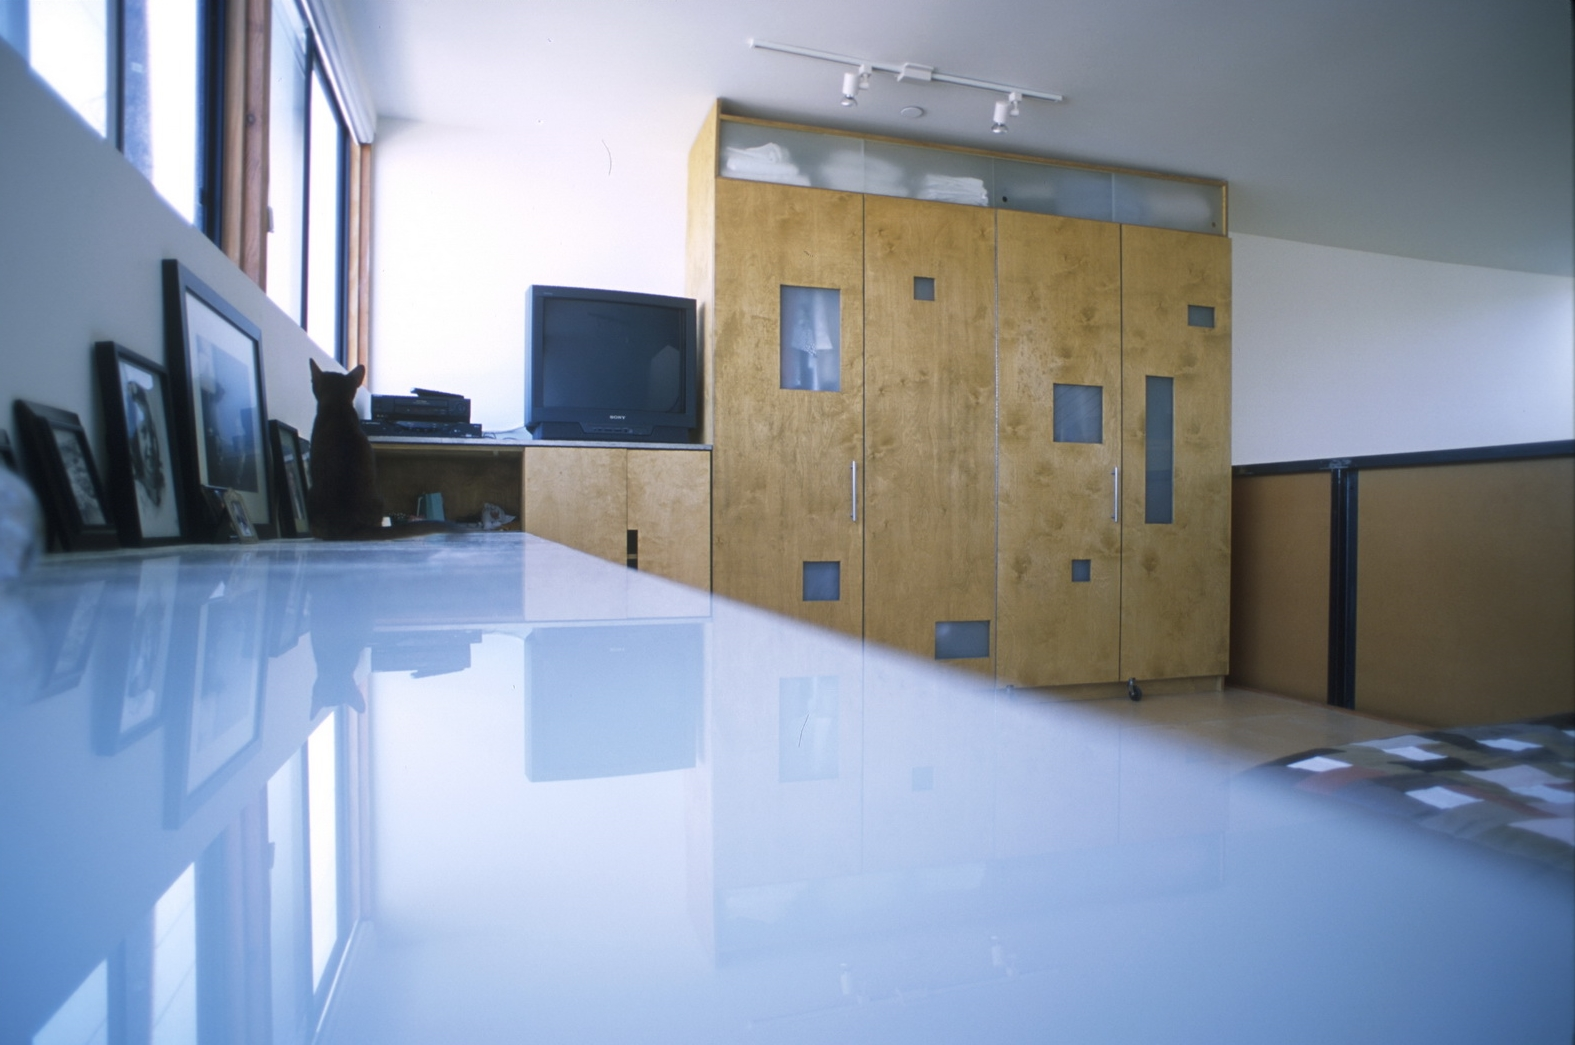 Glass countertops were provided as a contrast to the plywood. Frosted glass openings were also provided in the privacy screen to play up the division of space.